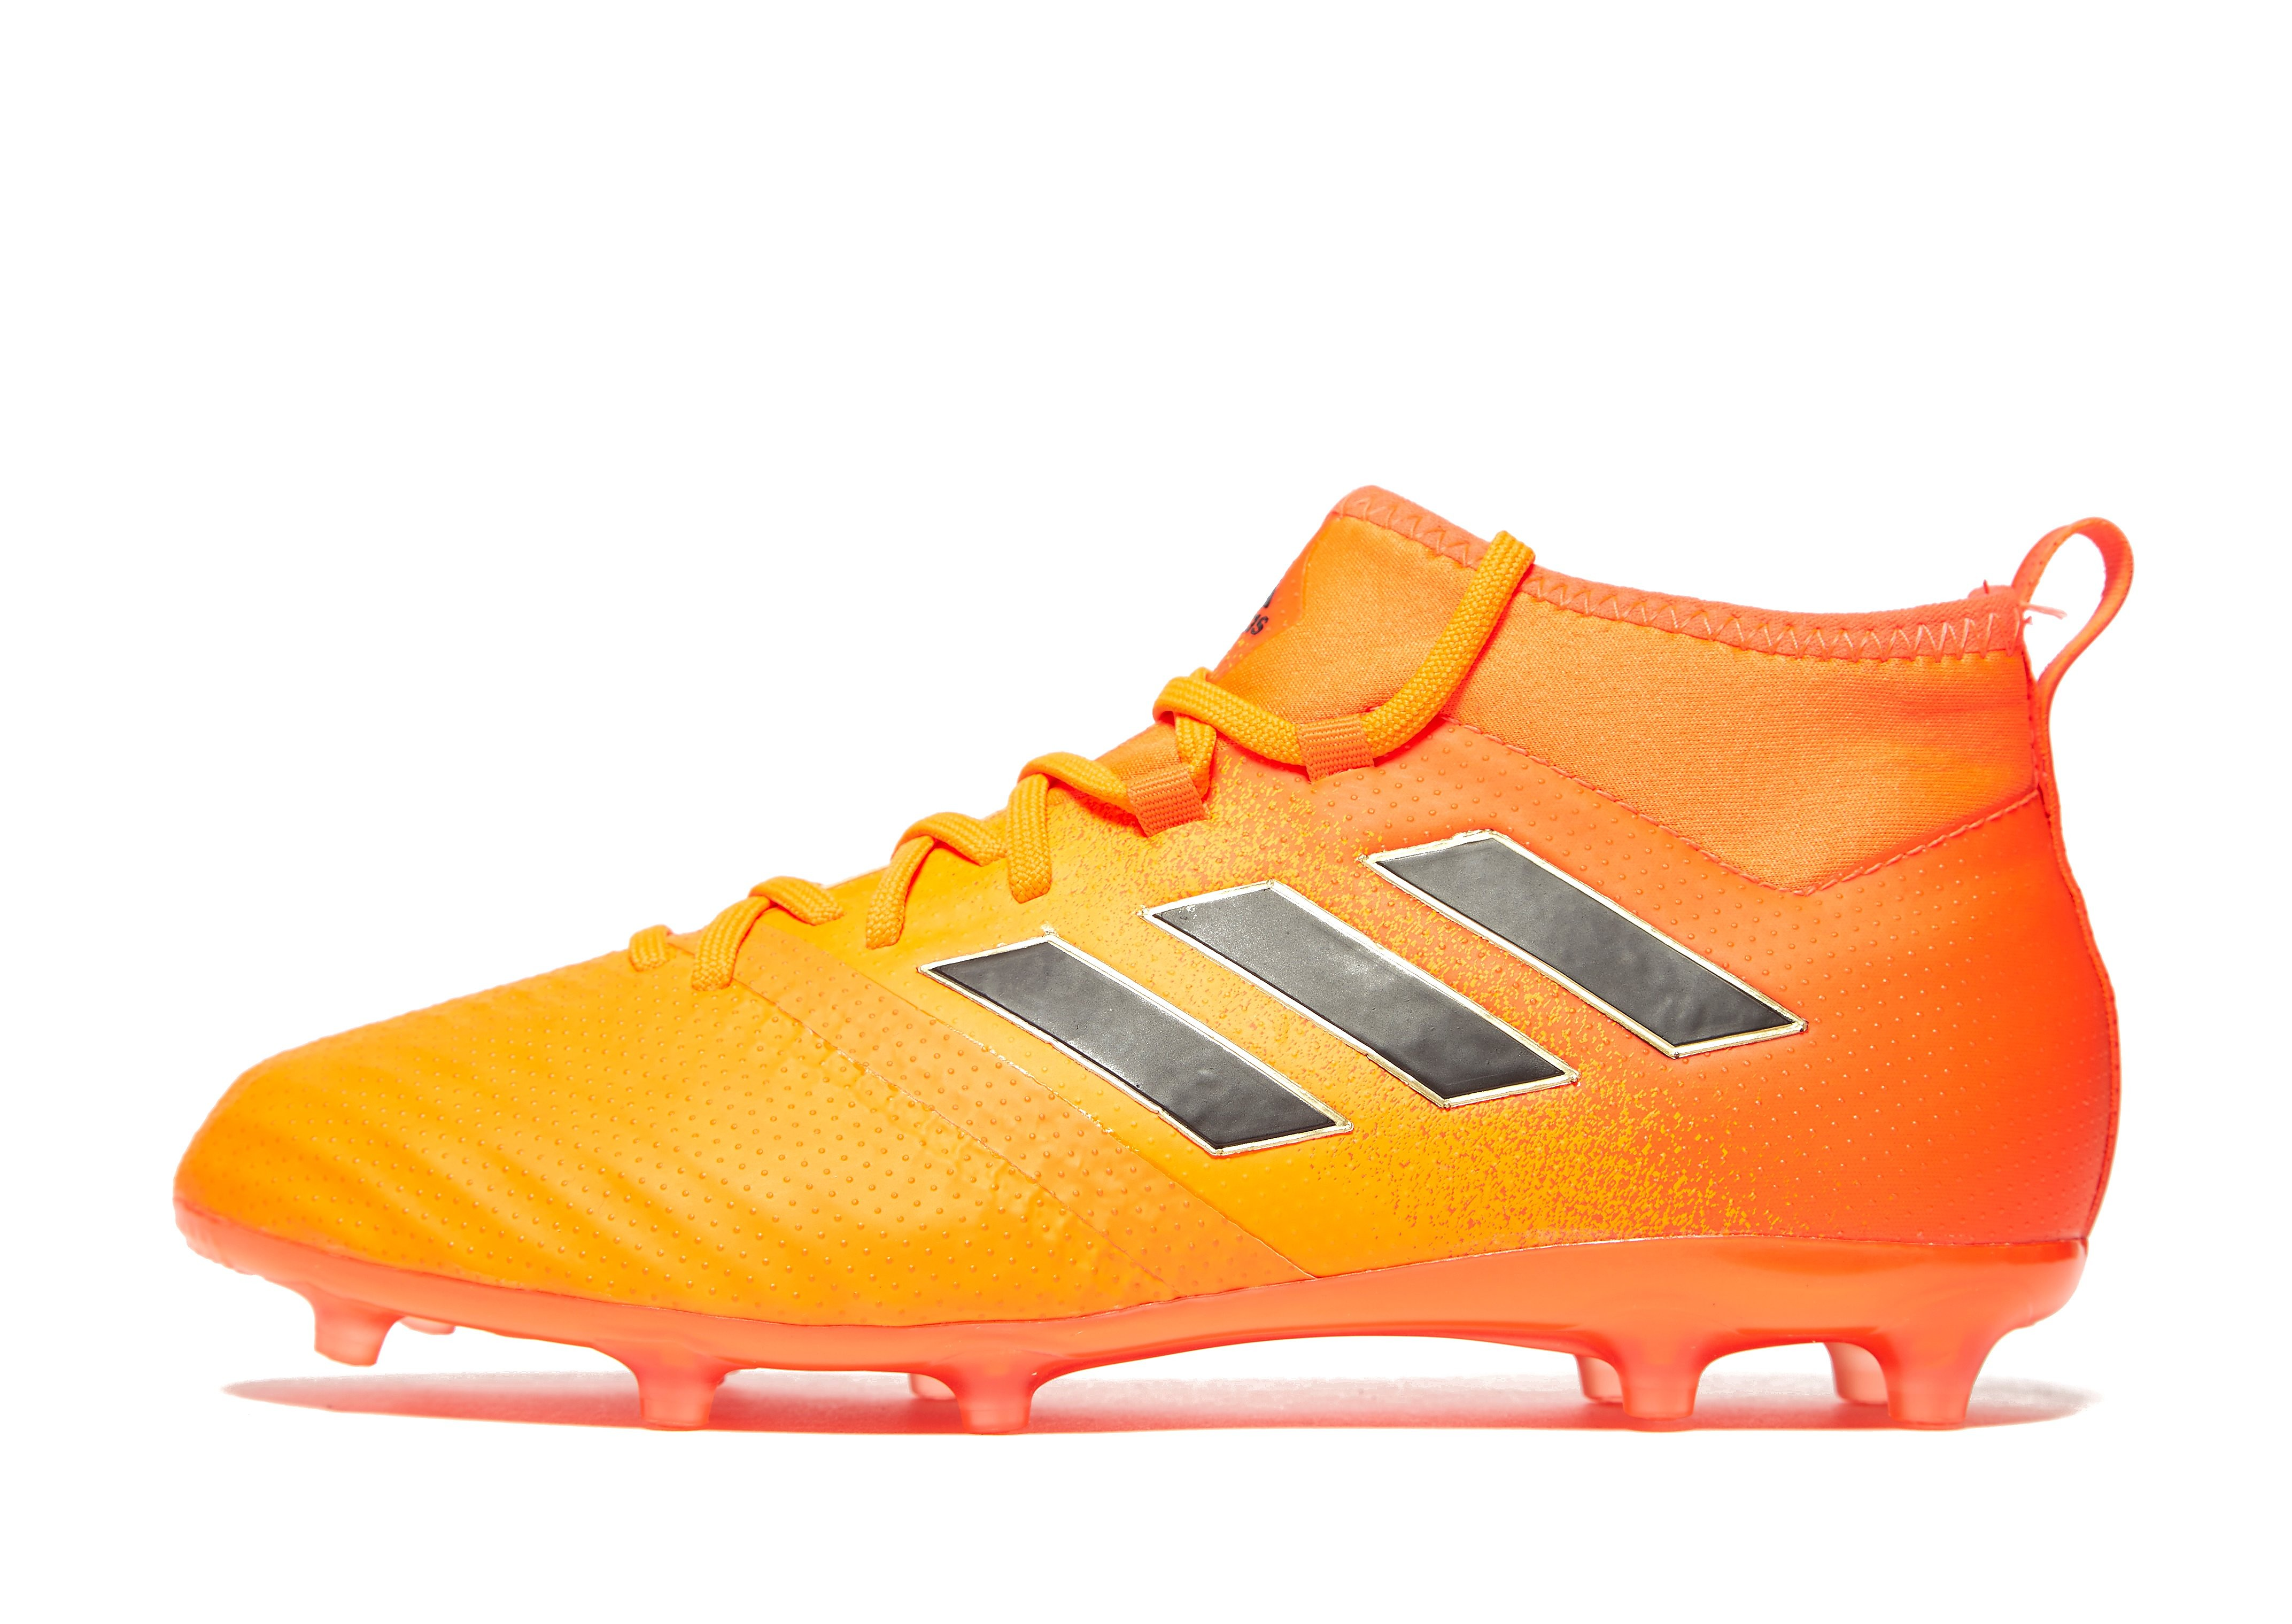 adidas Pyro Storm Ace 17.1 FG Junior